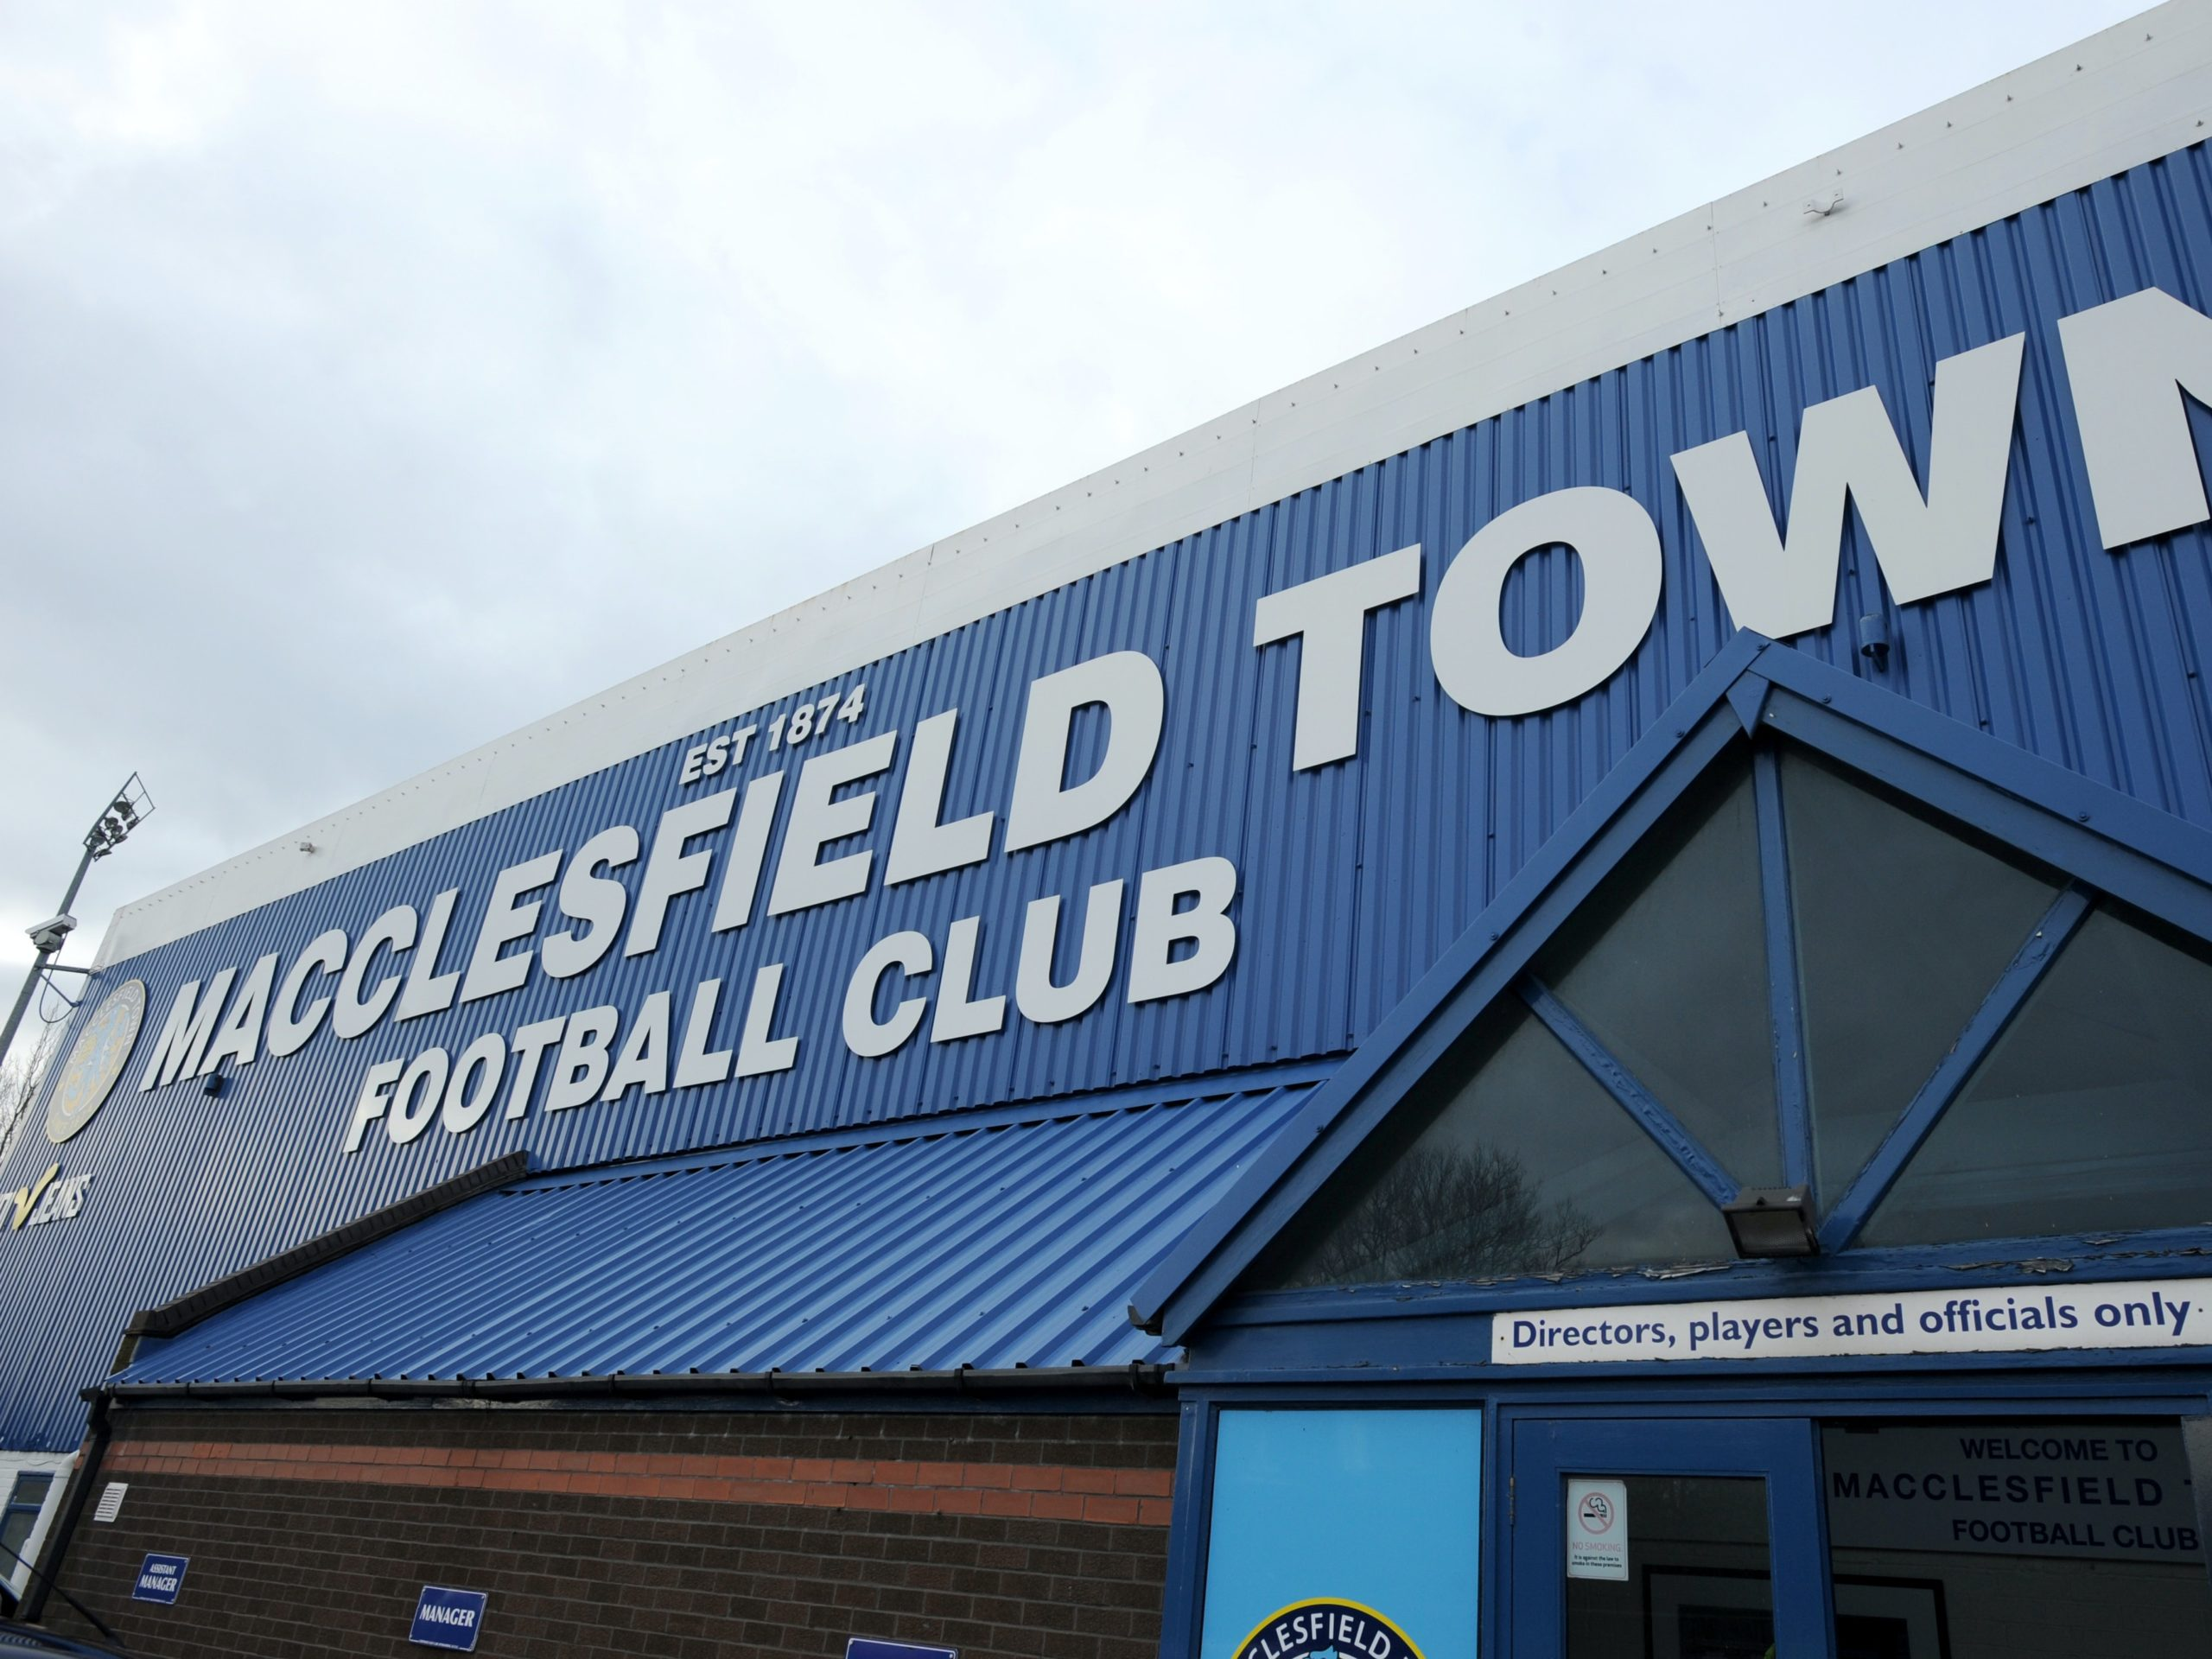 Macclesfield could face relegation after EFL appeal against two-point deduction